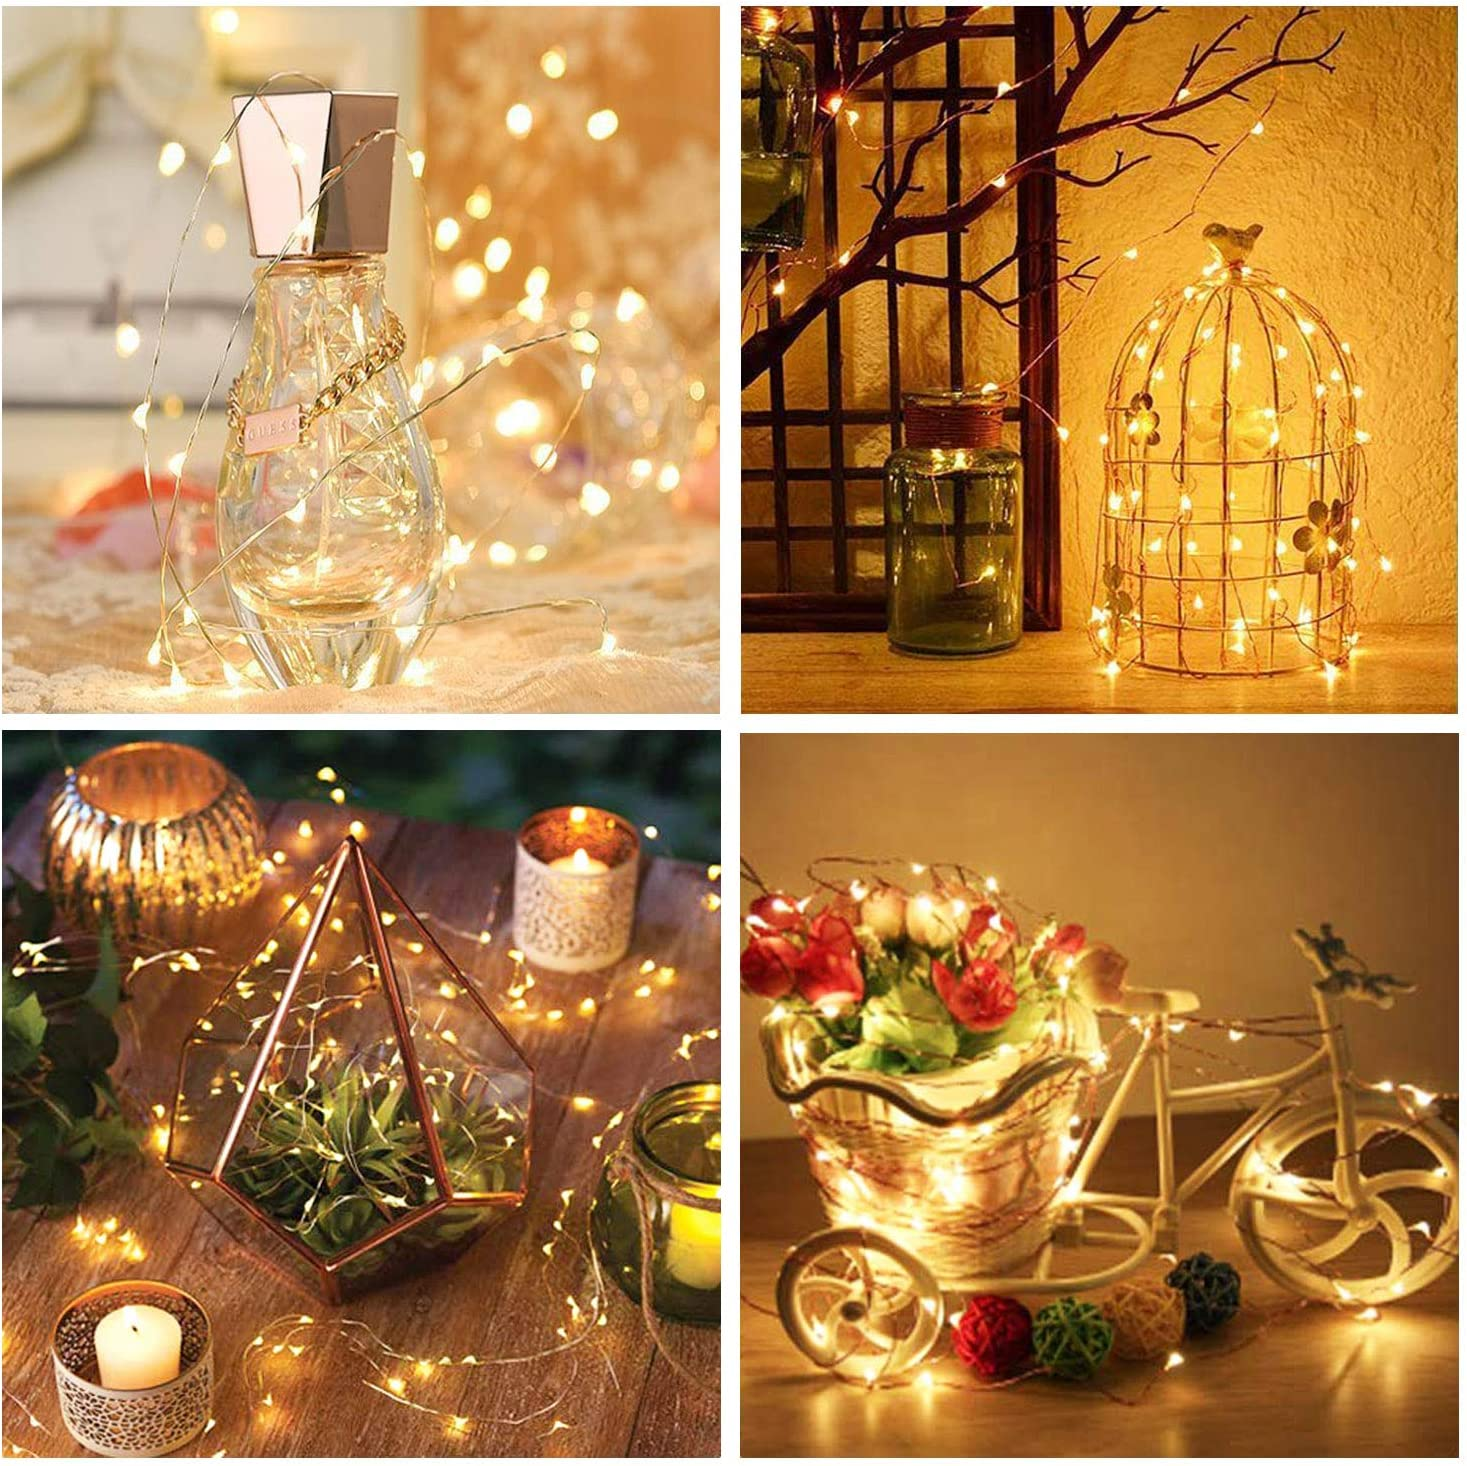 Blue 100 LED Waterproof Fairy String Decorative Copper Wire Lights for Wedding Bedroom Christmas HONGM Solar String Lights Outdoor Patio Party 2Pack